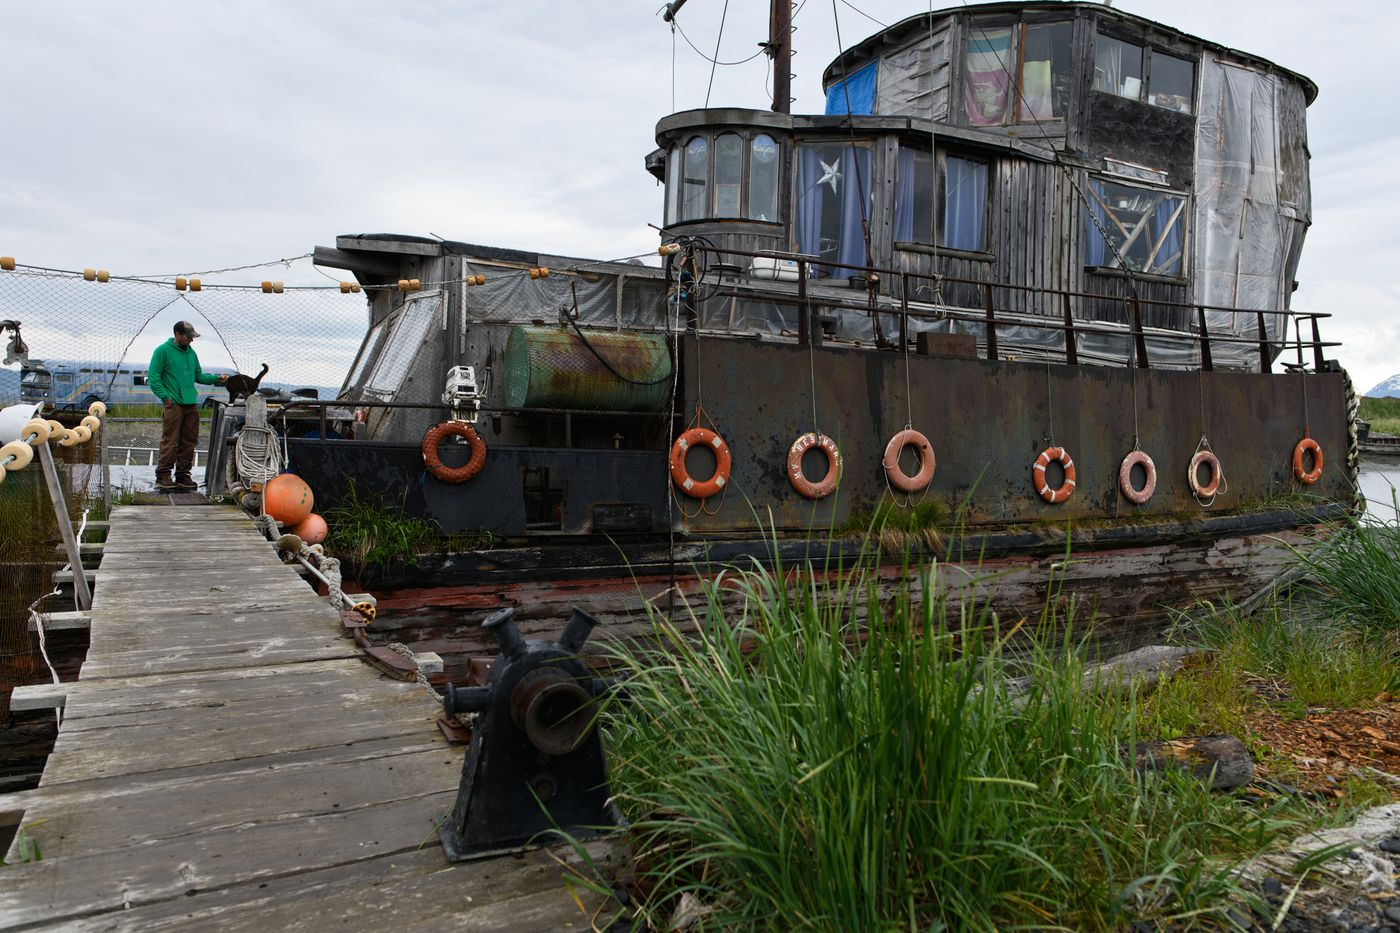 """Drew O'Neill lives with his family in an old boat on the Homer Spit. The boat, known to many as the """"pirate ship,"""" is a Homer landmark that regularly attracts attention from tourists. Photographed on June 19, 2018. (Marc Lester / ADN)"""